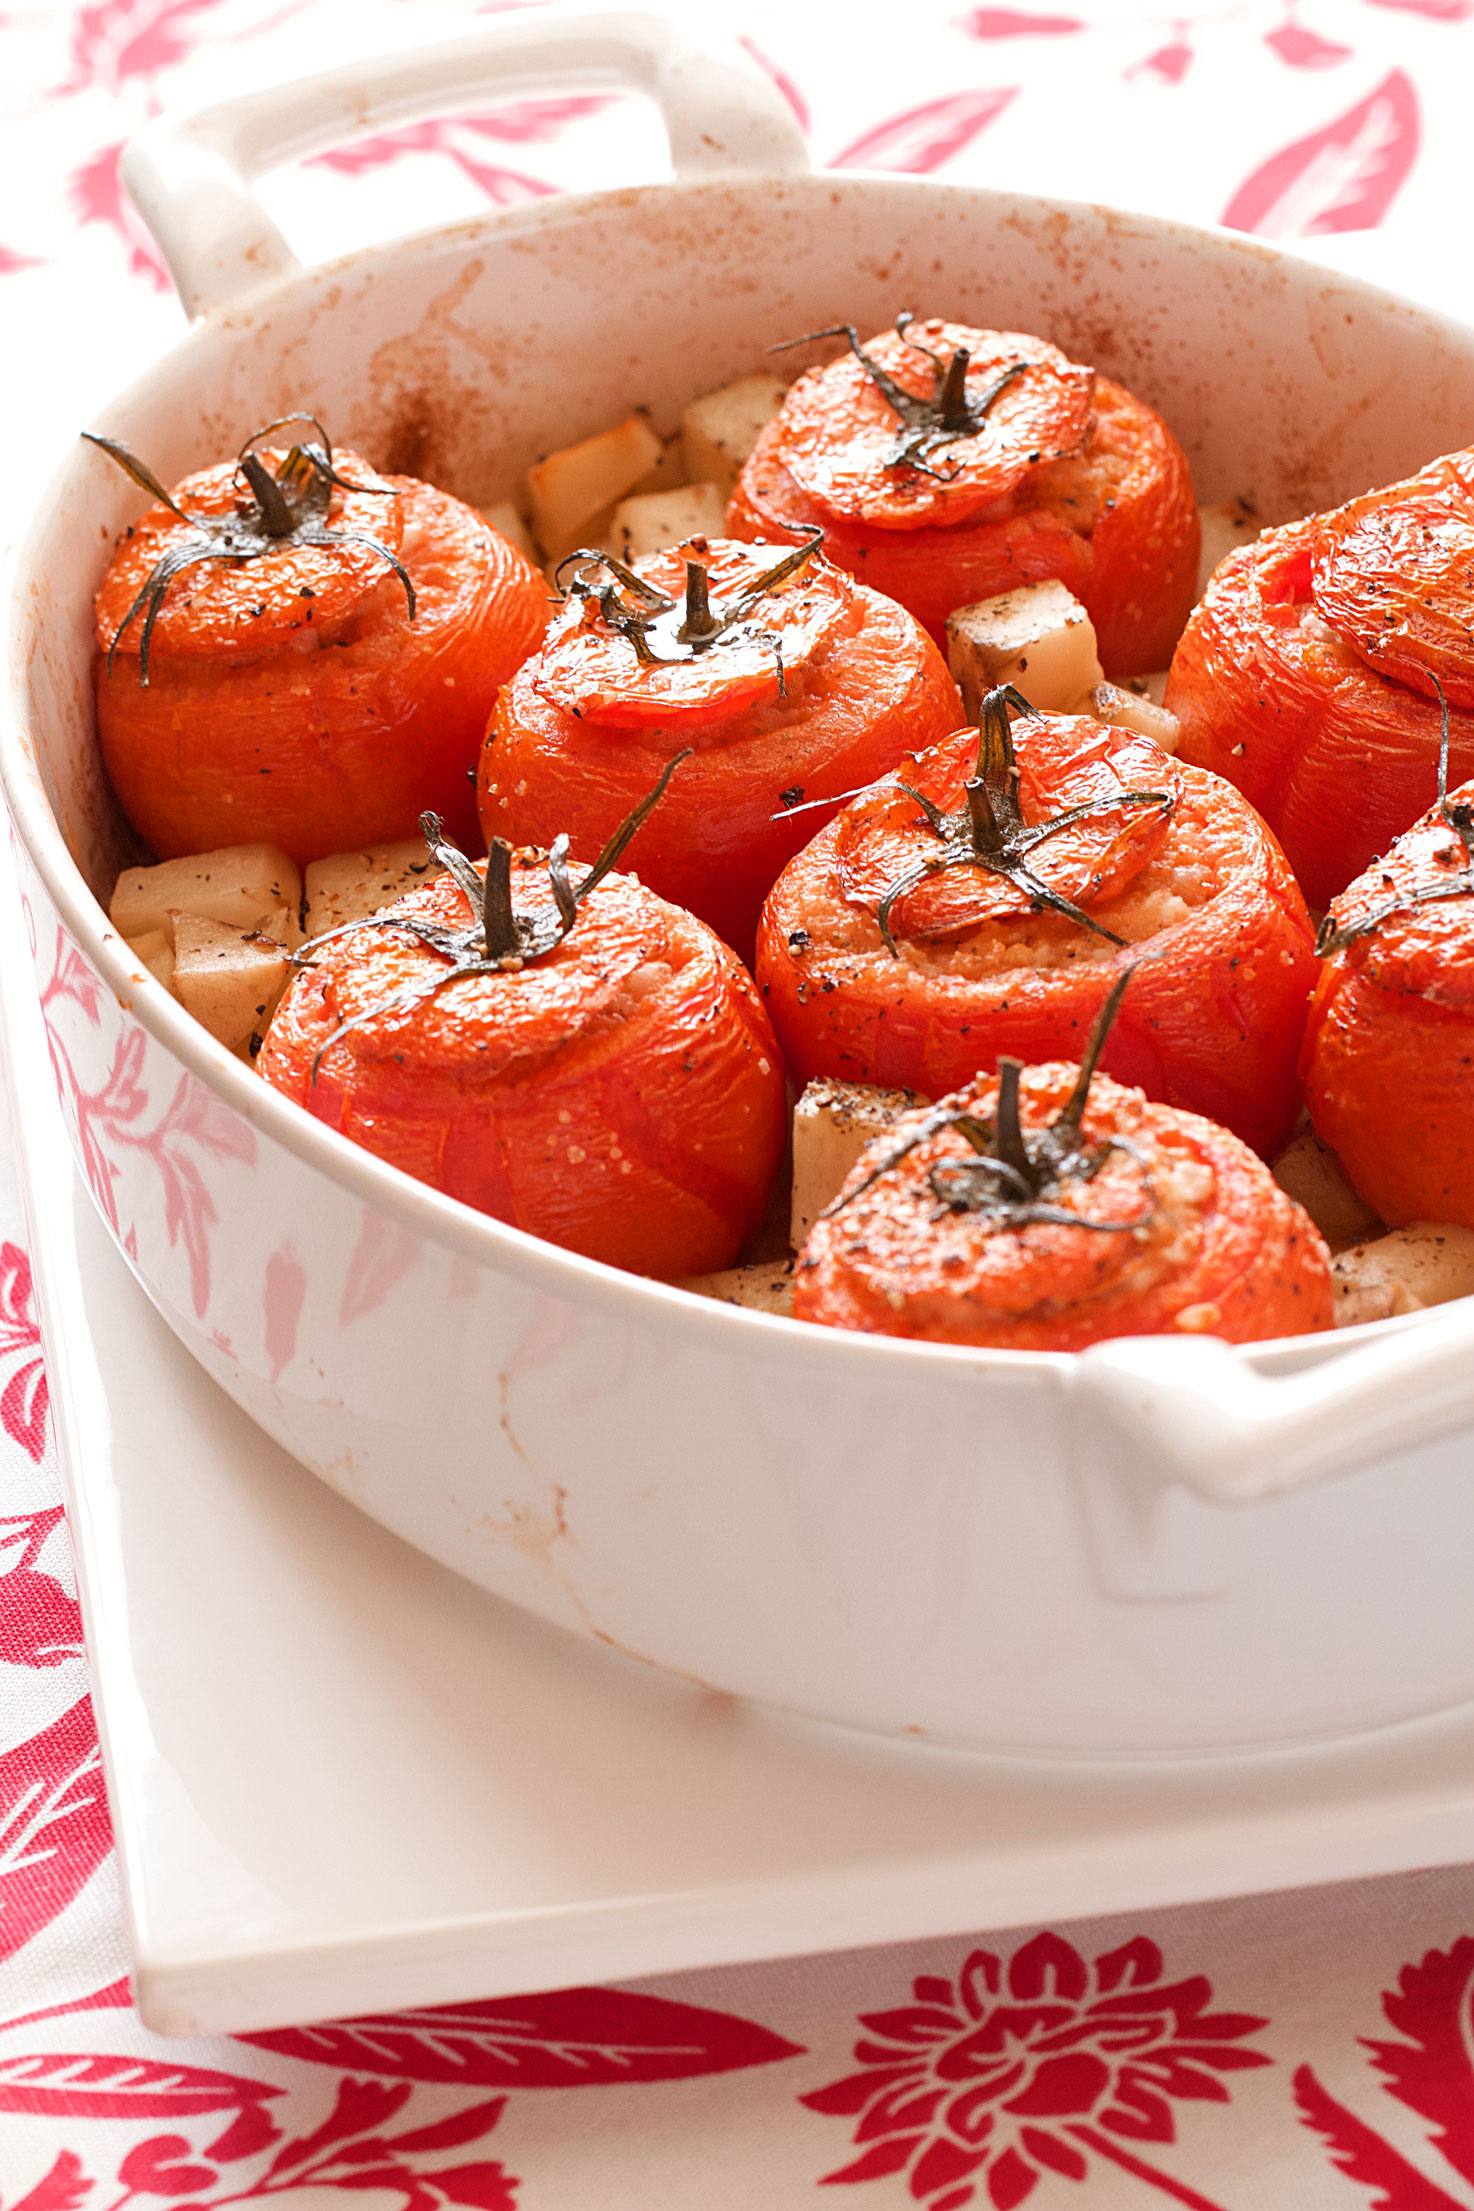 Baked Tomatoes Stuffed with Rice (Roman Style)